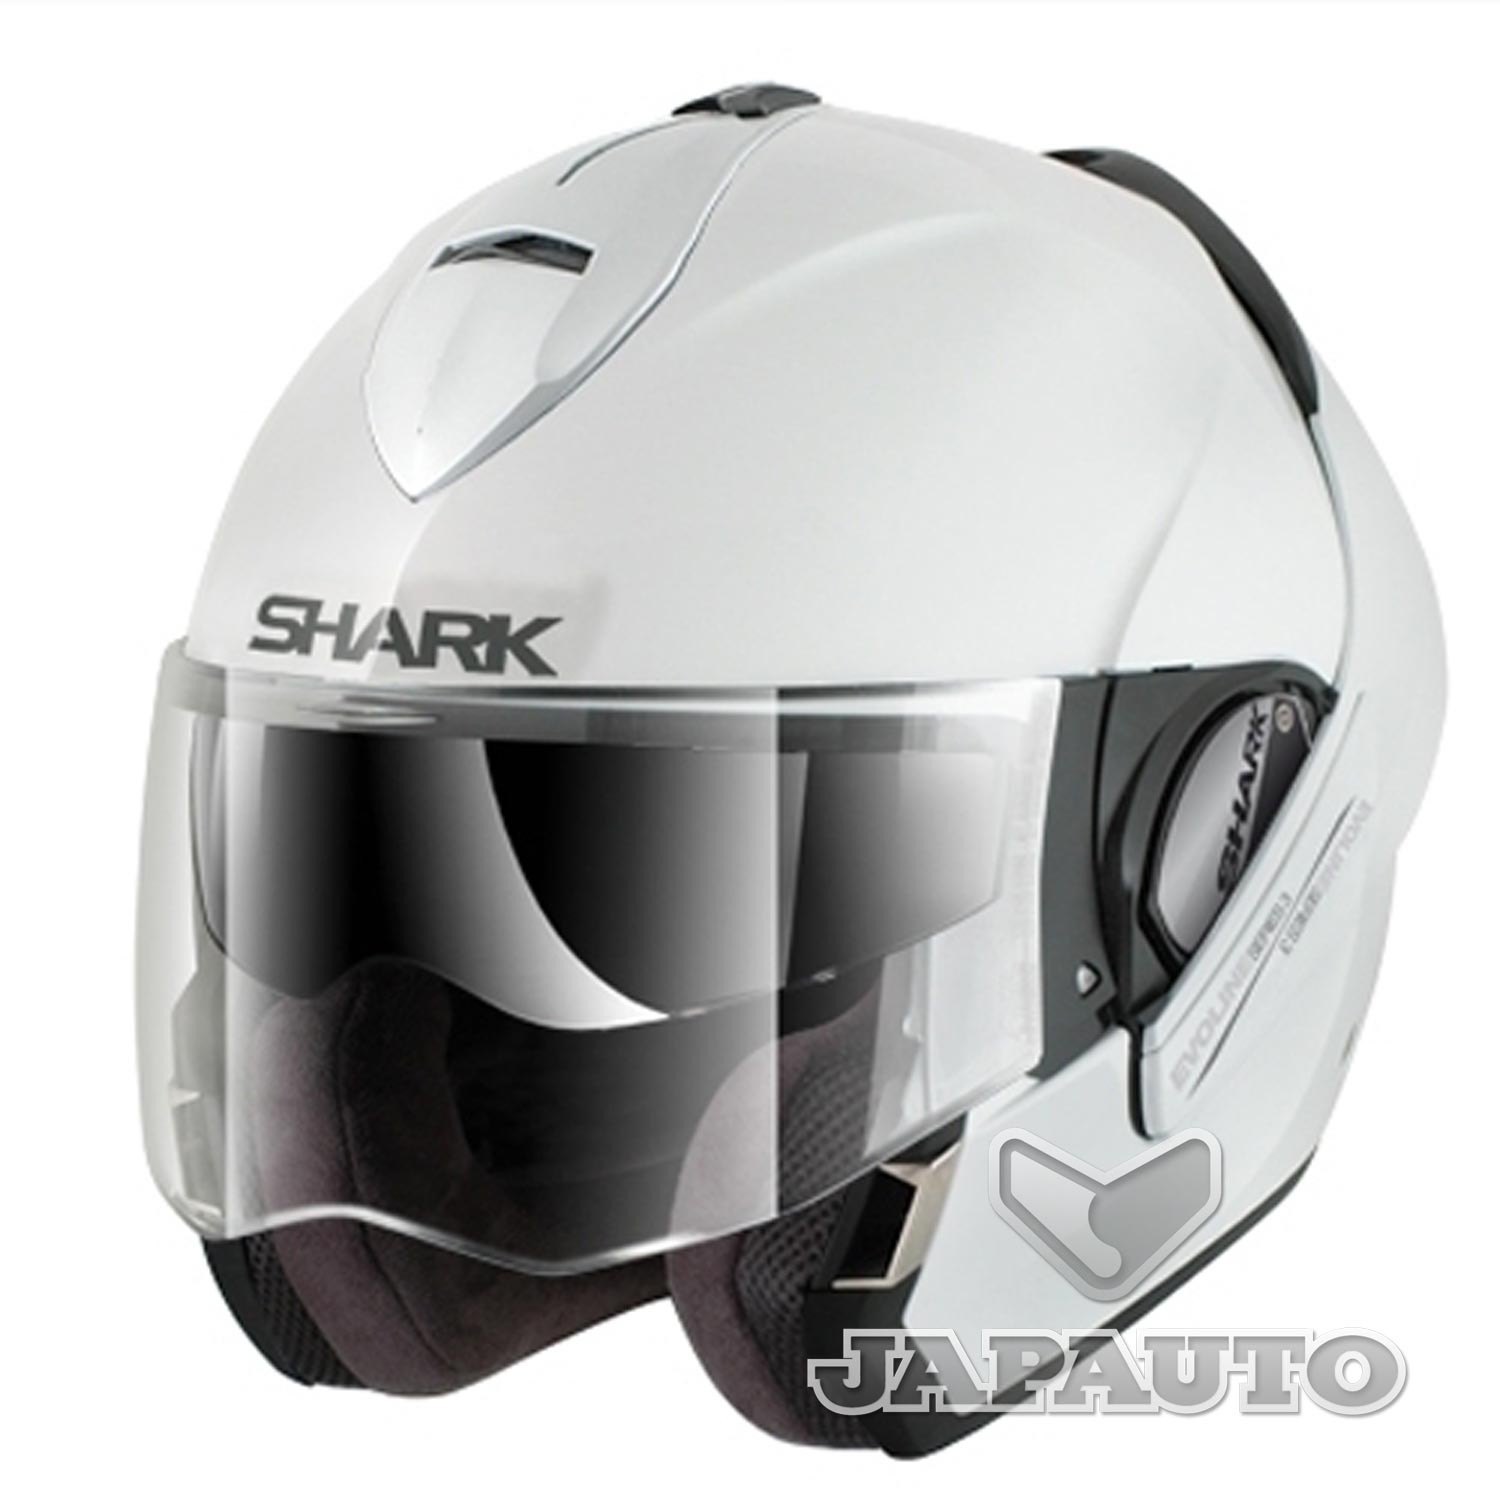 casque modulable shark evoline 3 blanc japauto accessoires equipement pilote pour moto et. Black Bedroom Furniture Sets. Home Design Ideas